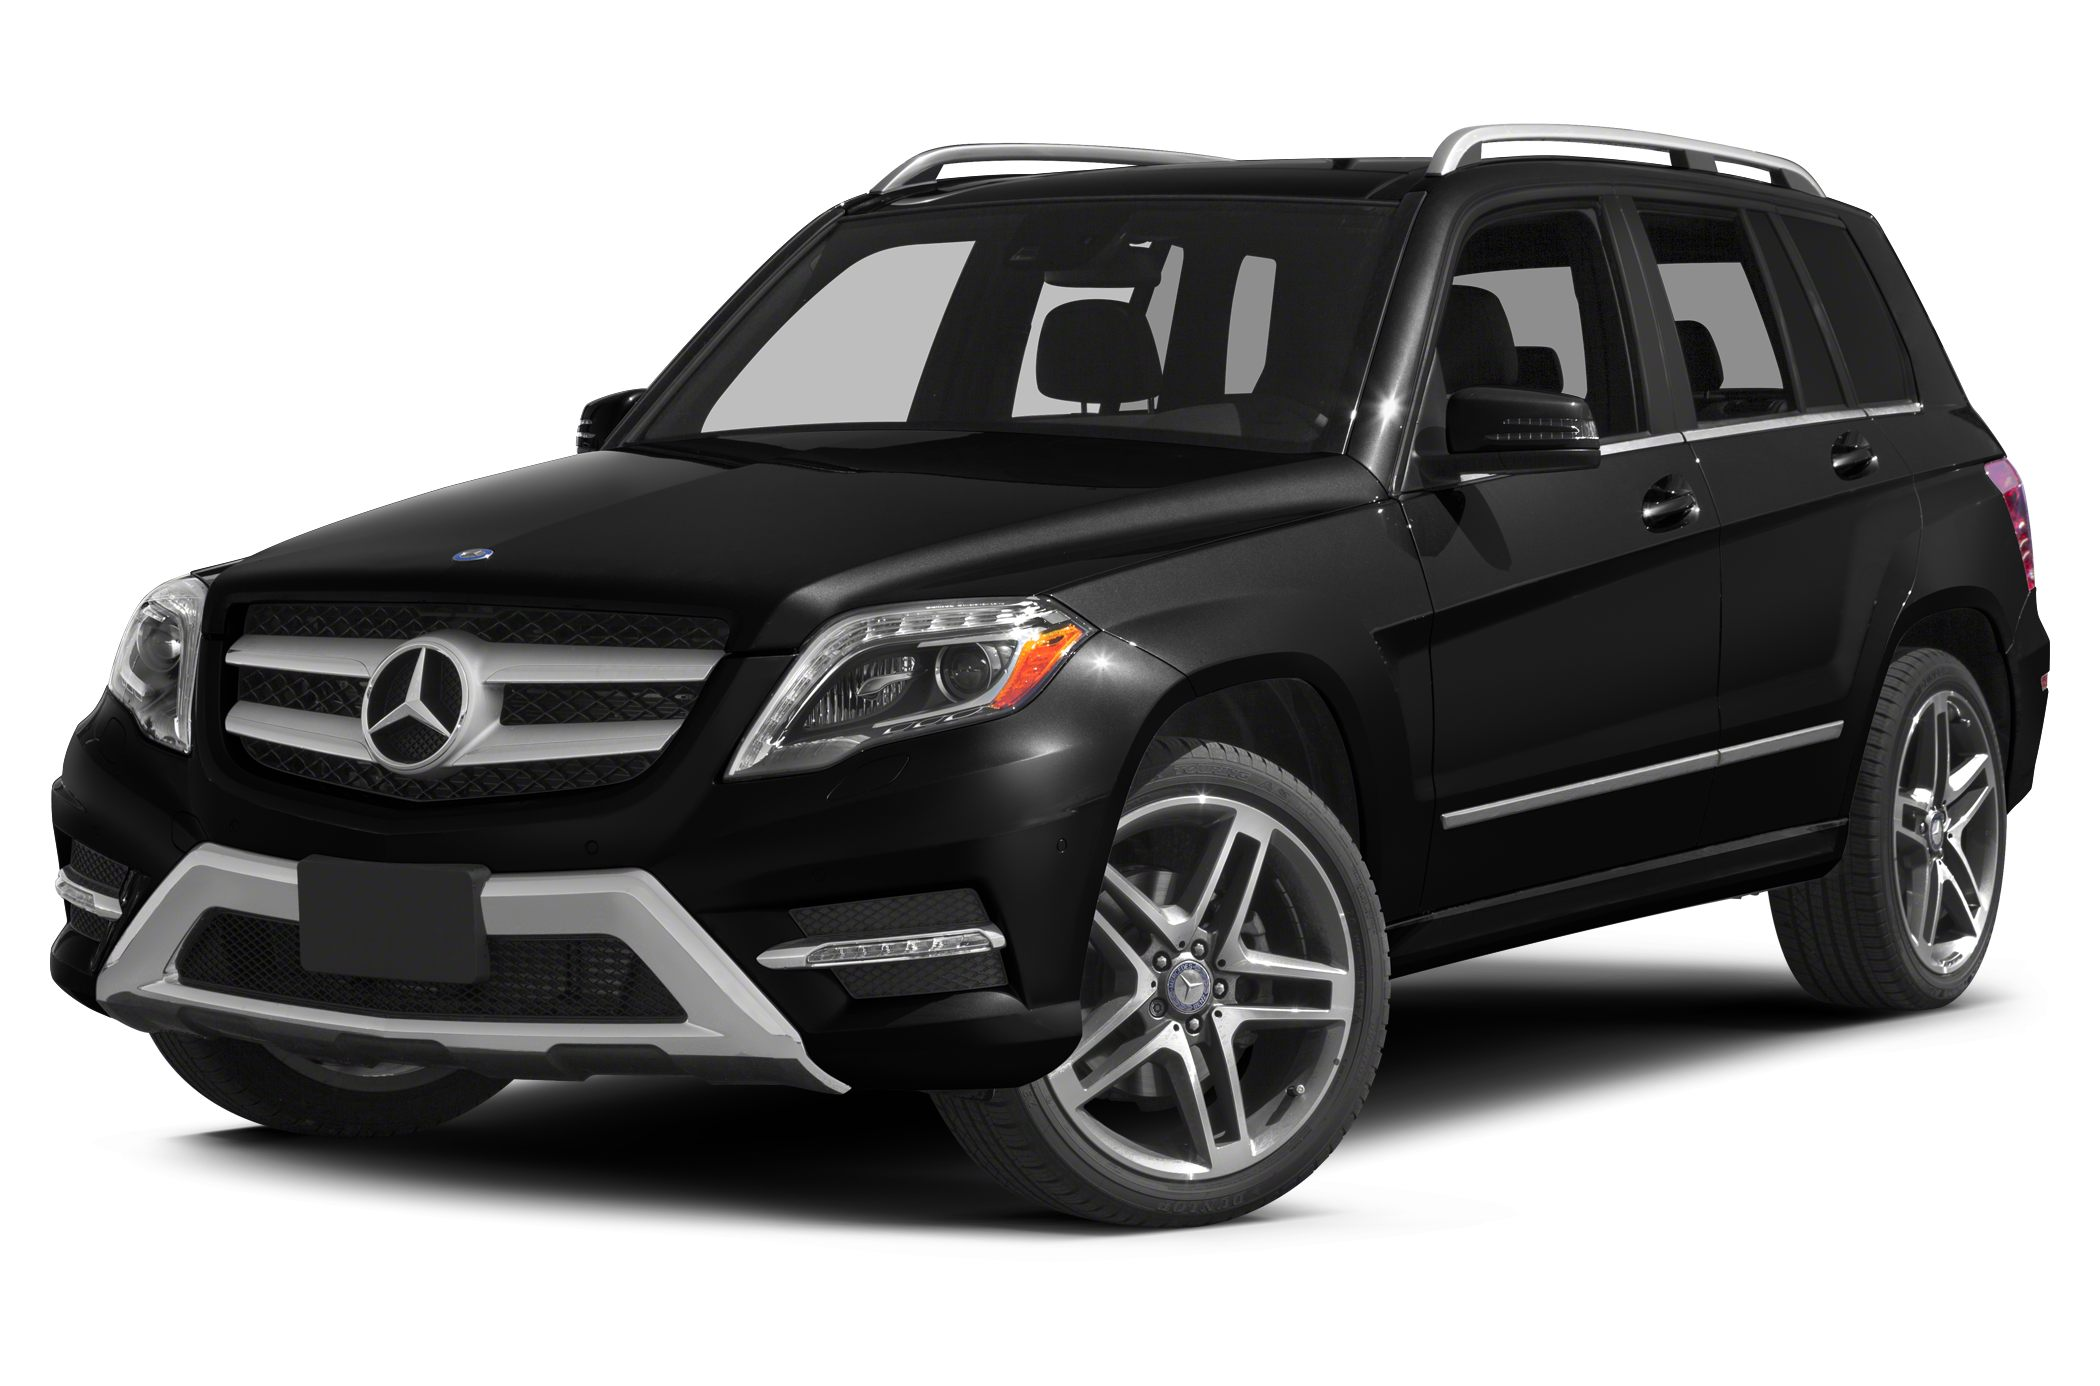 2013 Mercedes-Benz GLK-Class GLK250 BlueTEC 4MATIC SUV for sale in Louisville for $48,991 with 27,081 miles